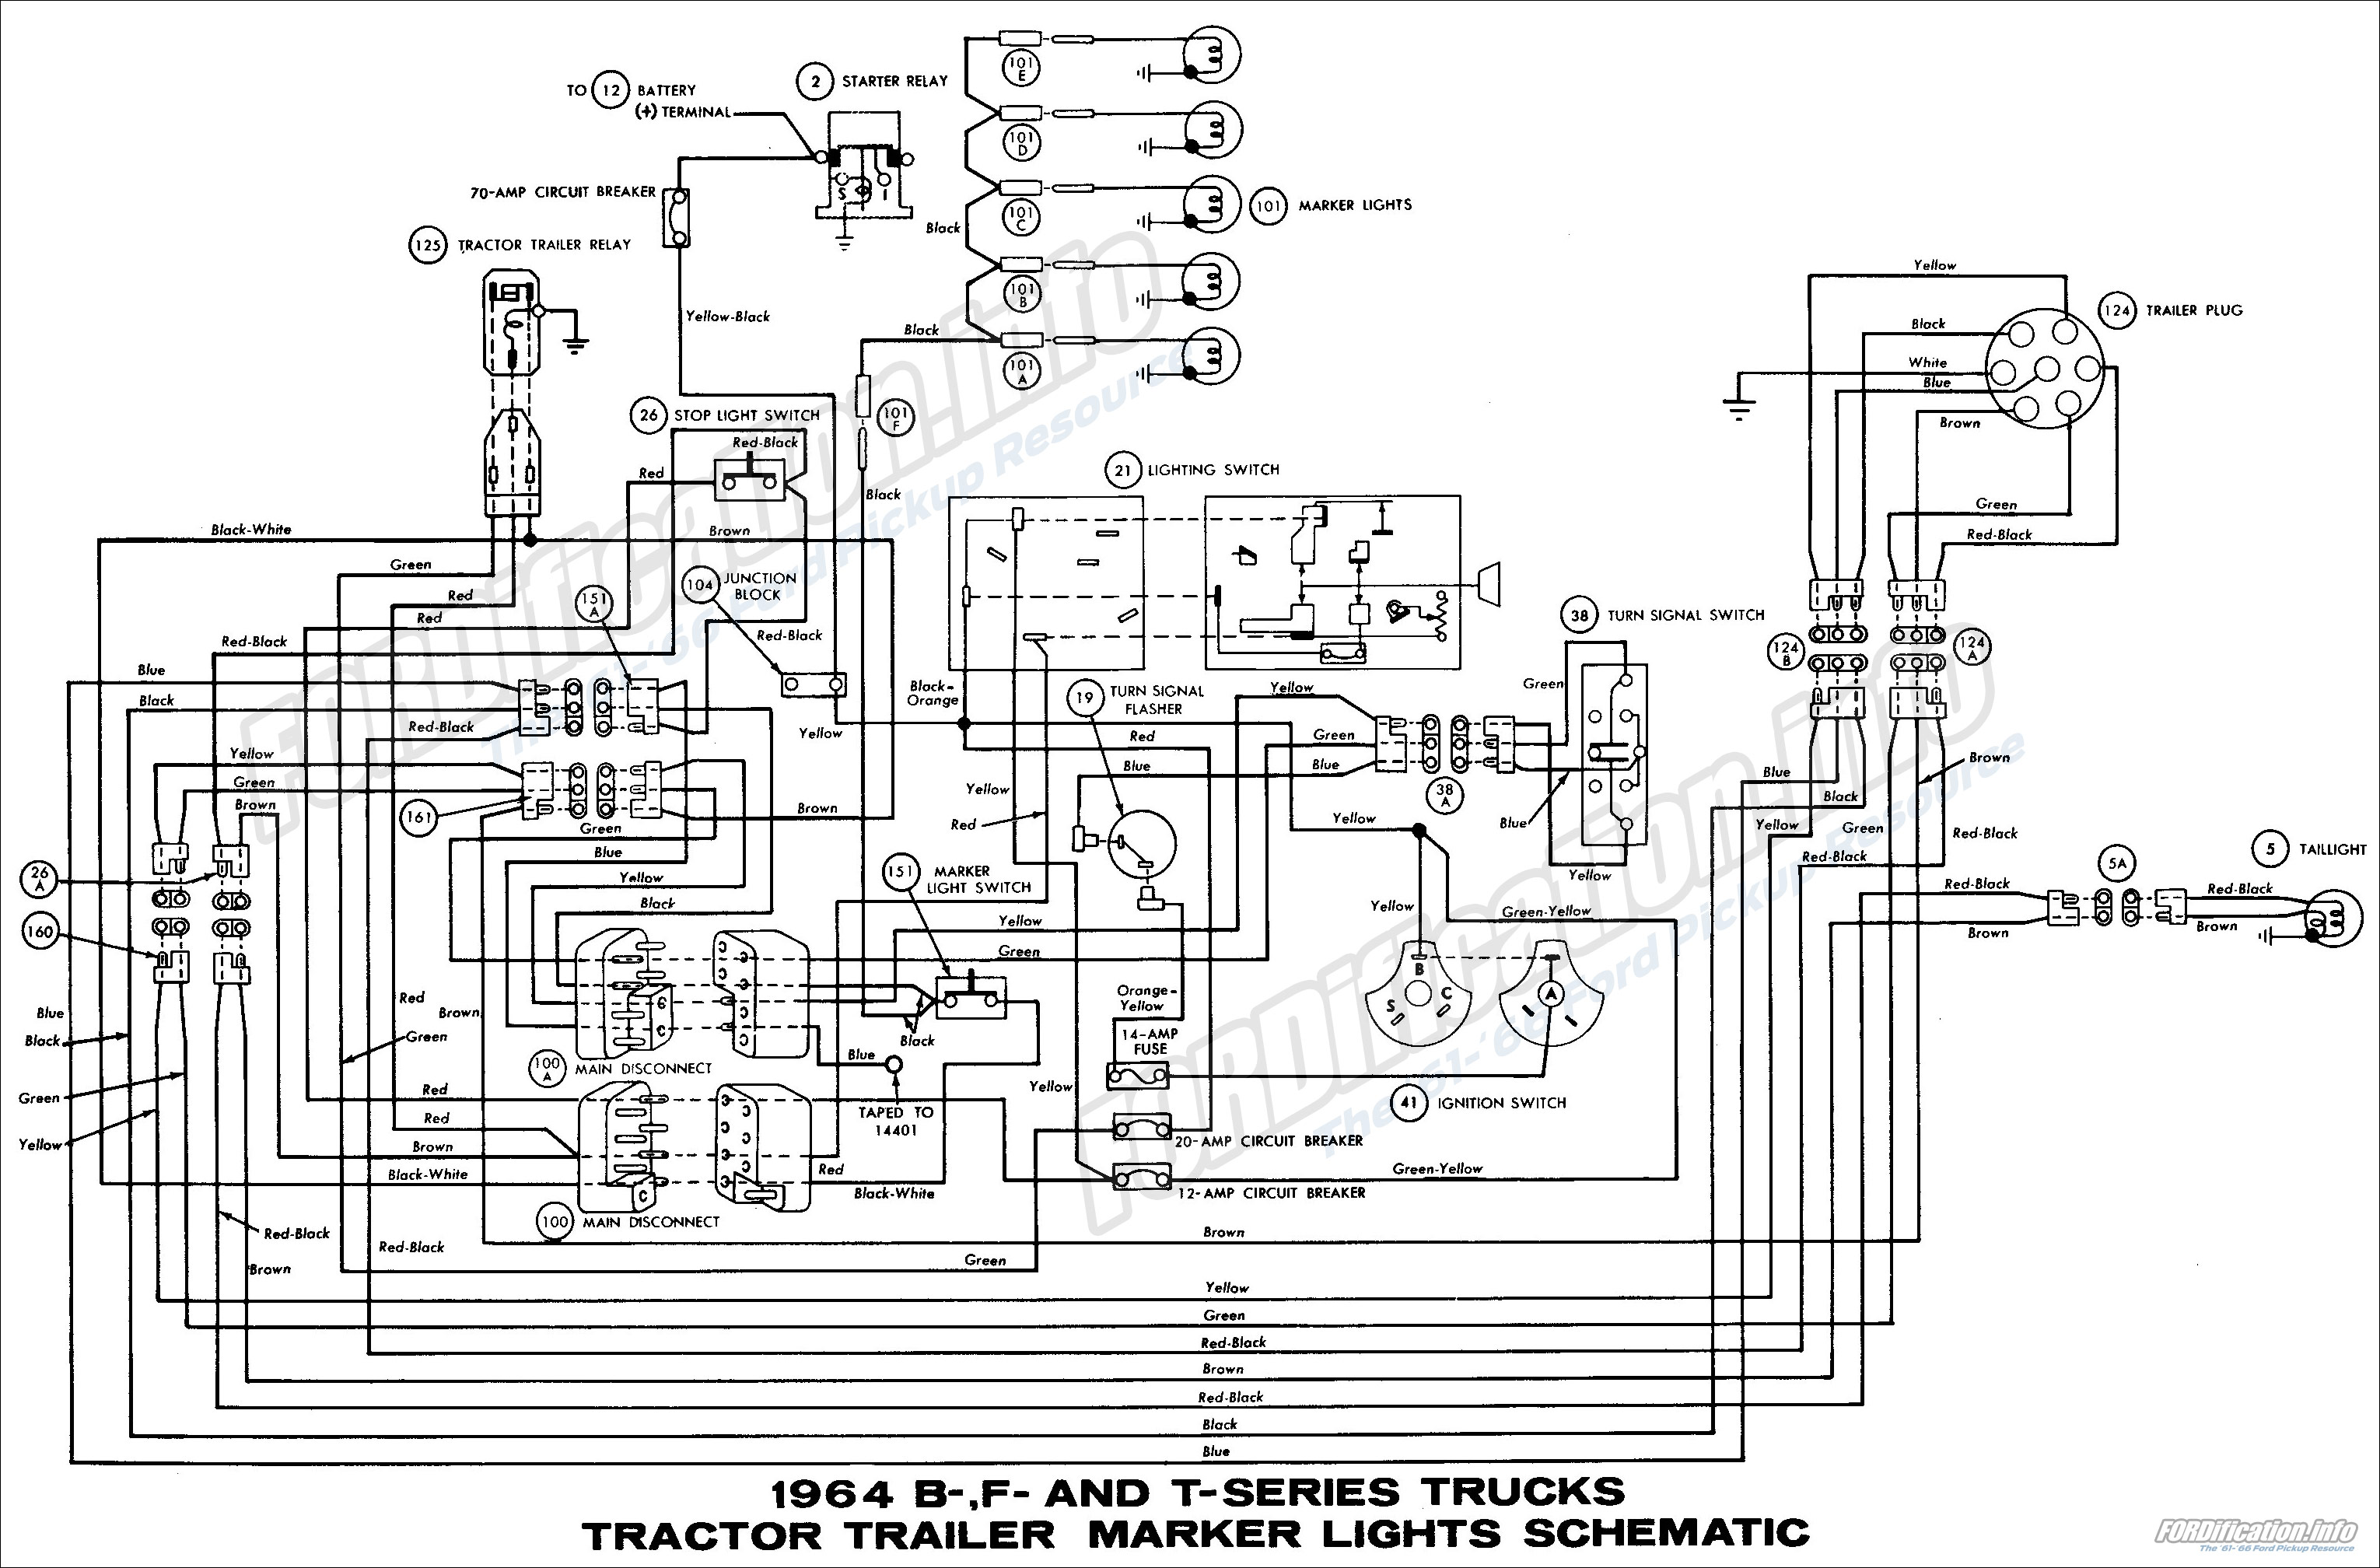 1964 Ford Truck Wiper Switch Wiring Diagram Electrical Diagrams Kenworth Trusted Ignition Module